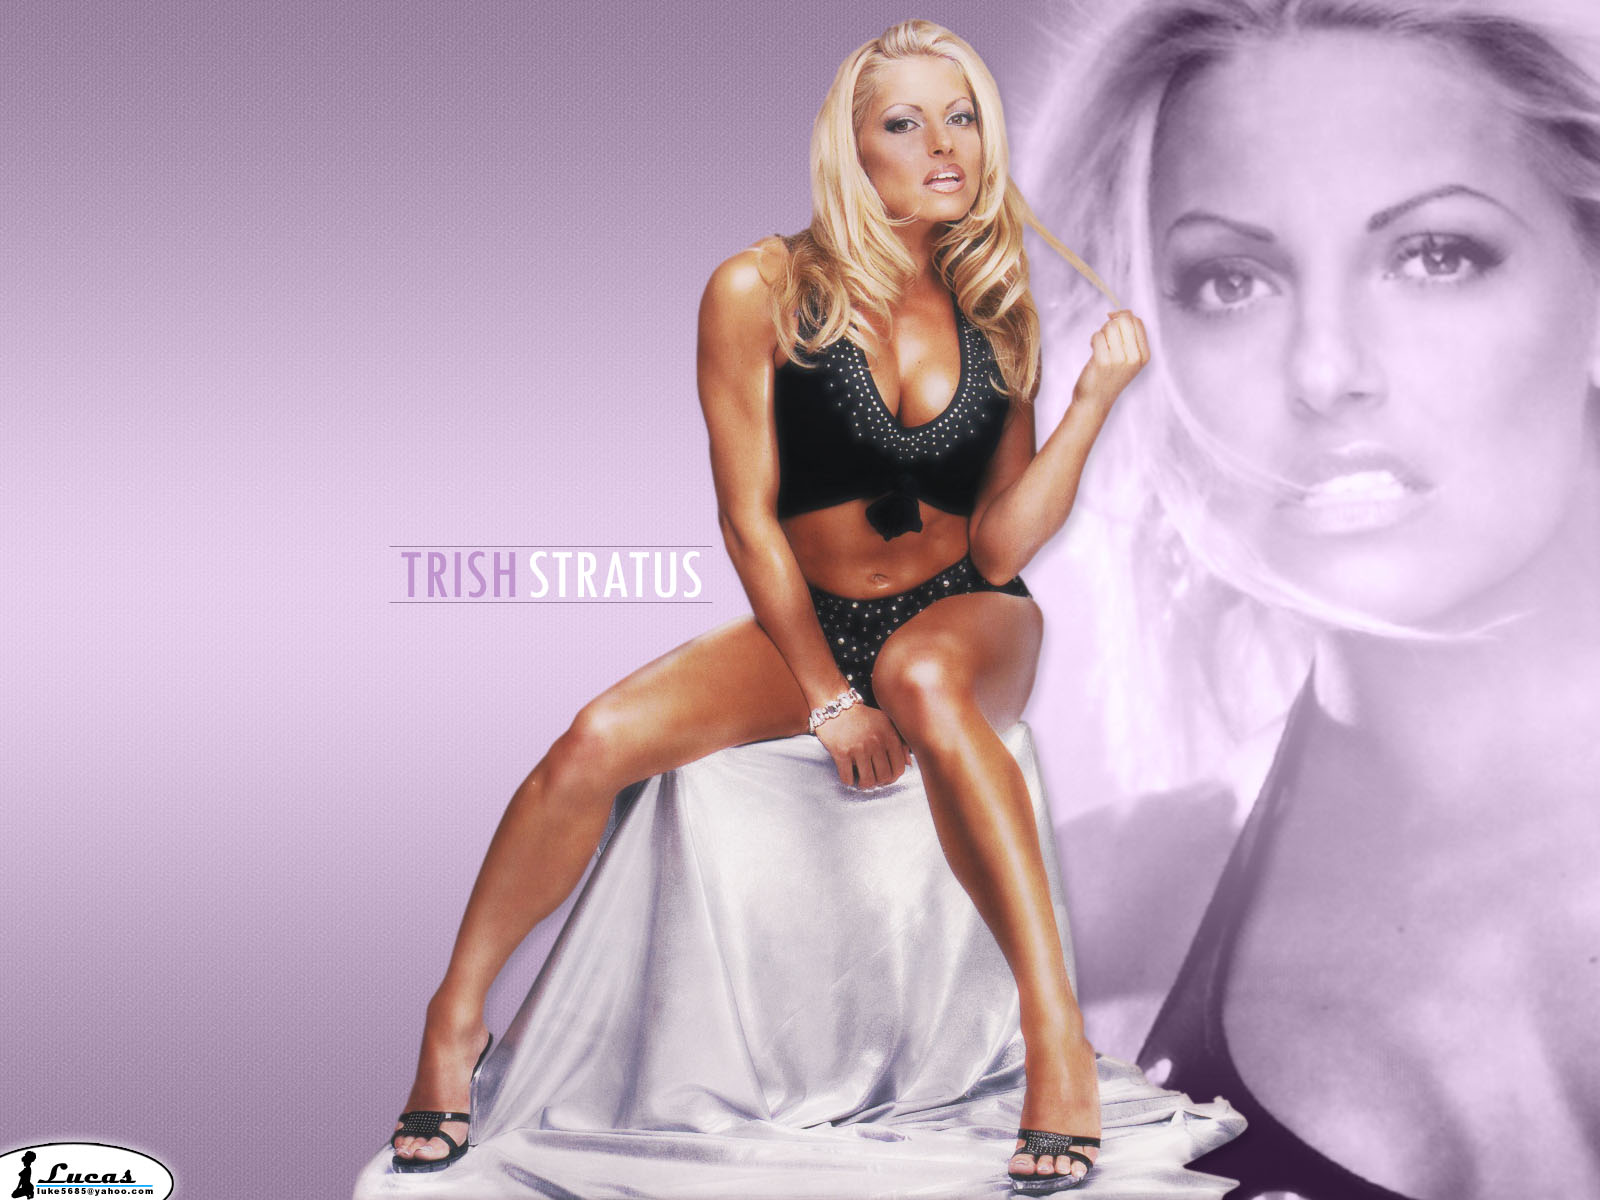 Trish Stratus - Images Gallery. Trish Stratus - Picture Actress